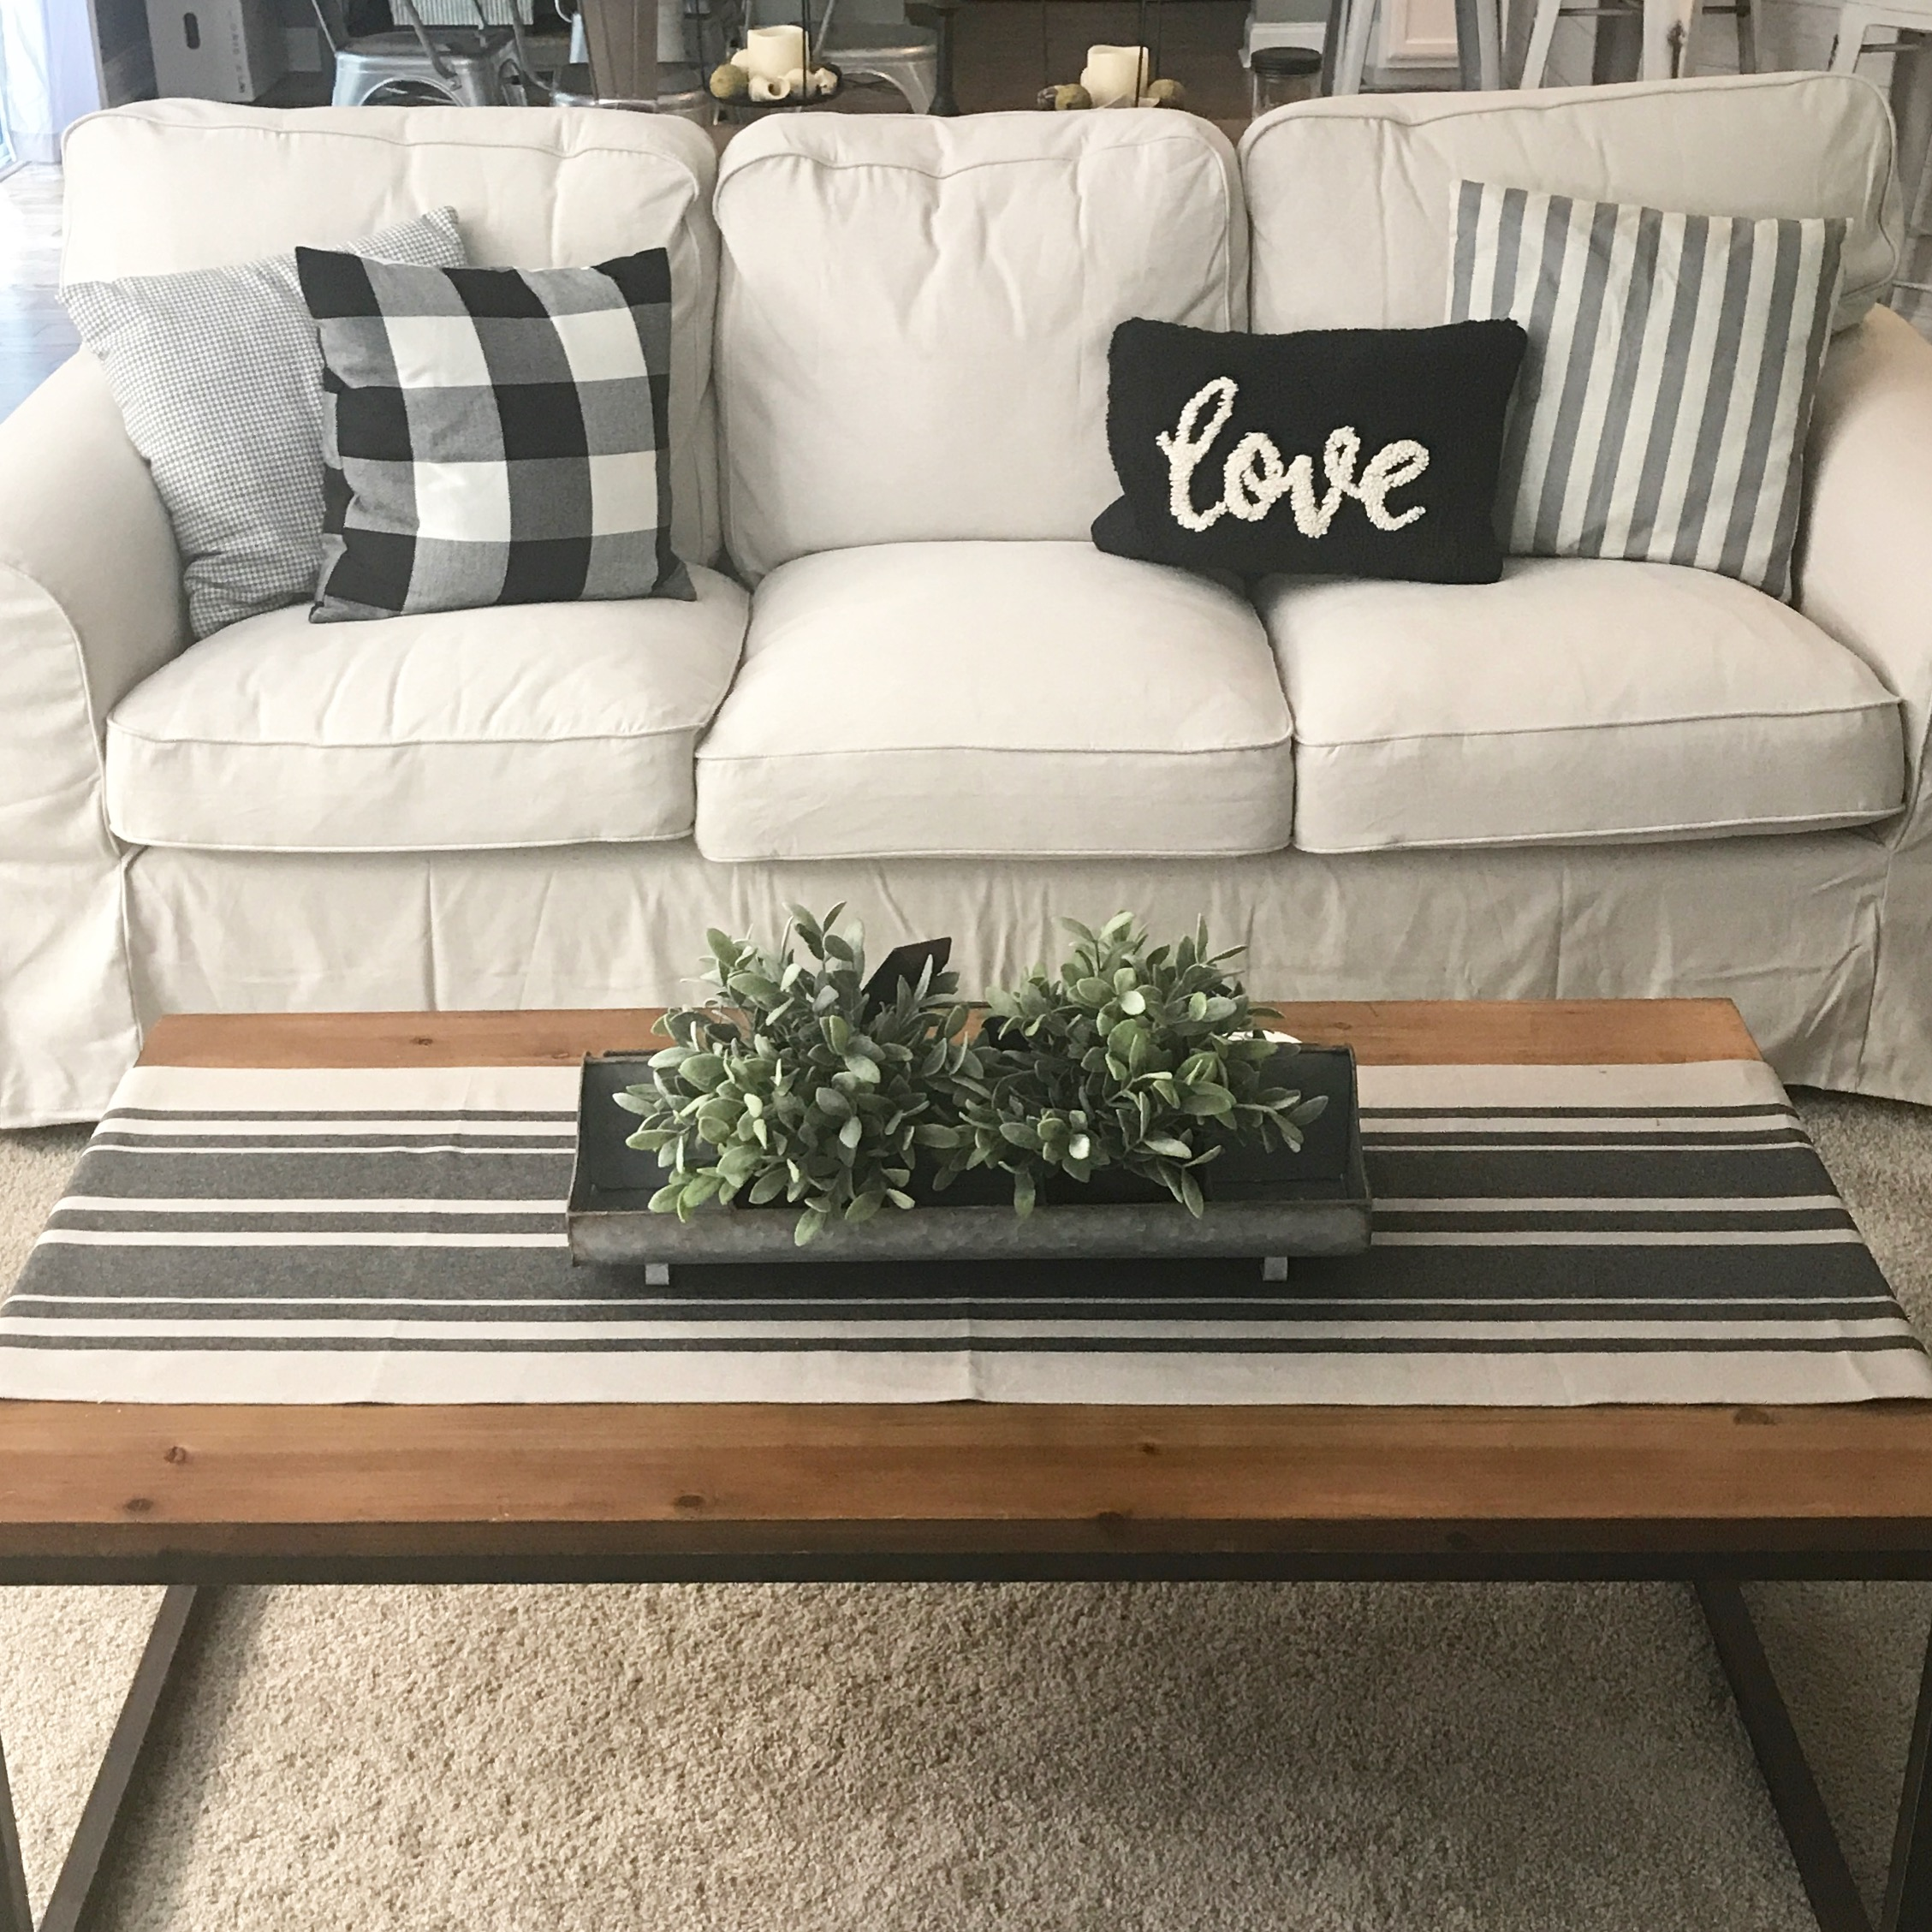 When We First Moved In Our Home A Little Over A Year Ago We Didnu0027t Do Our  Homework On The Couches We Purchased For Our Living Room. We Bought A Couch  And ...